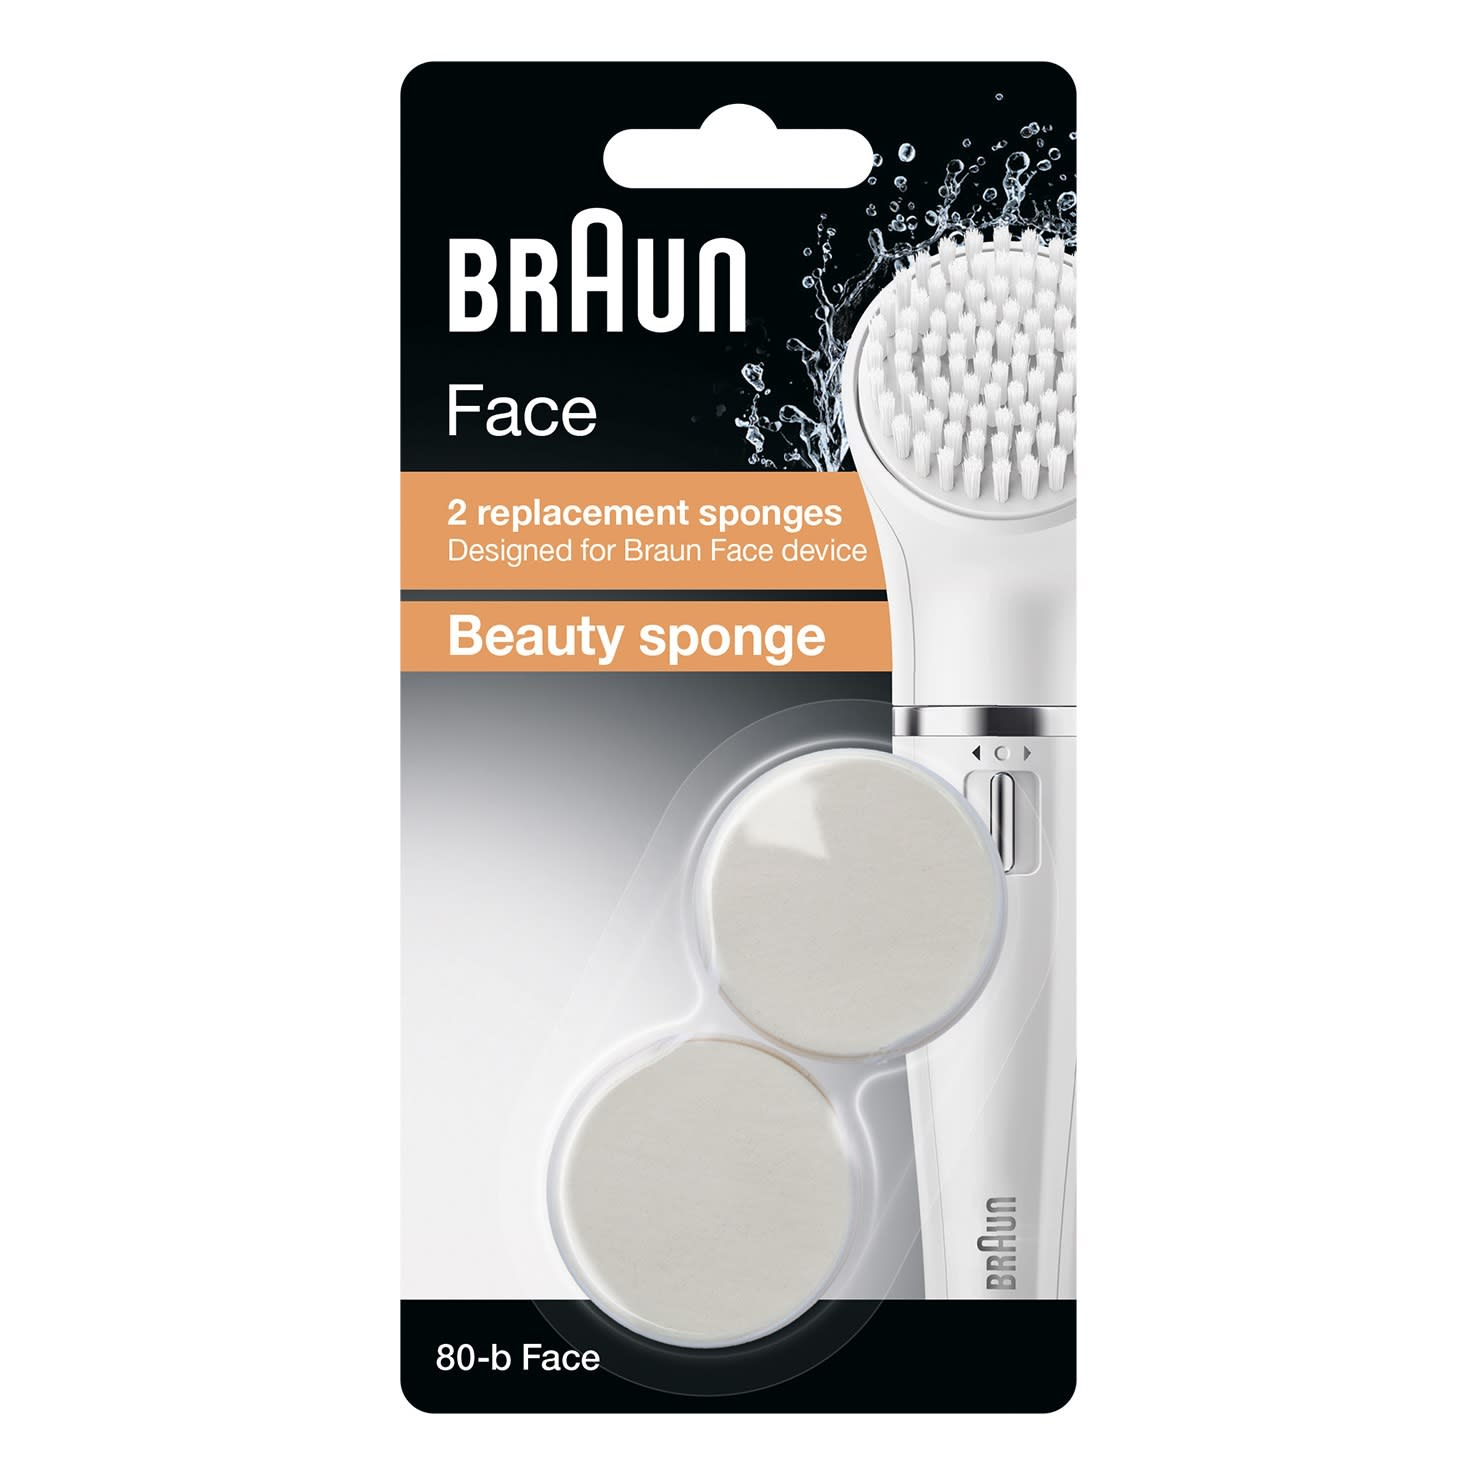 Braun facial cleansing brush refill duo pack 80-b packaging